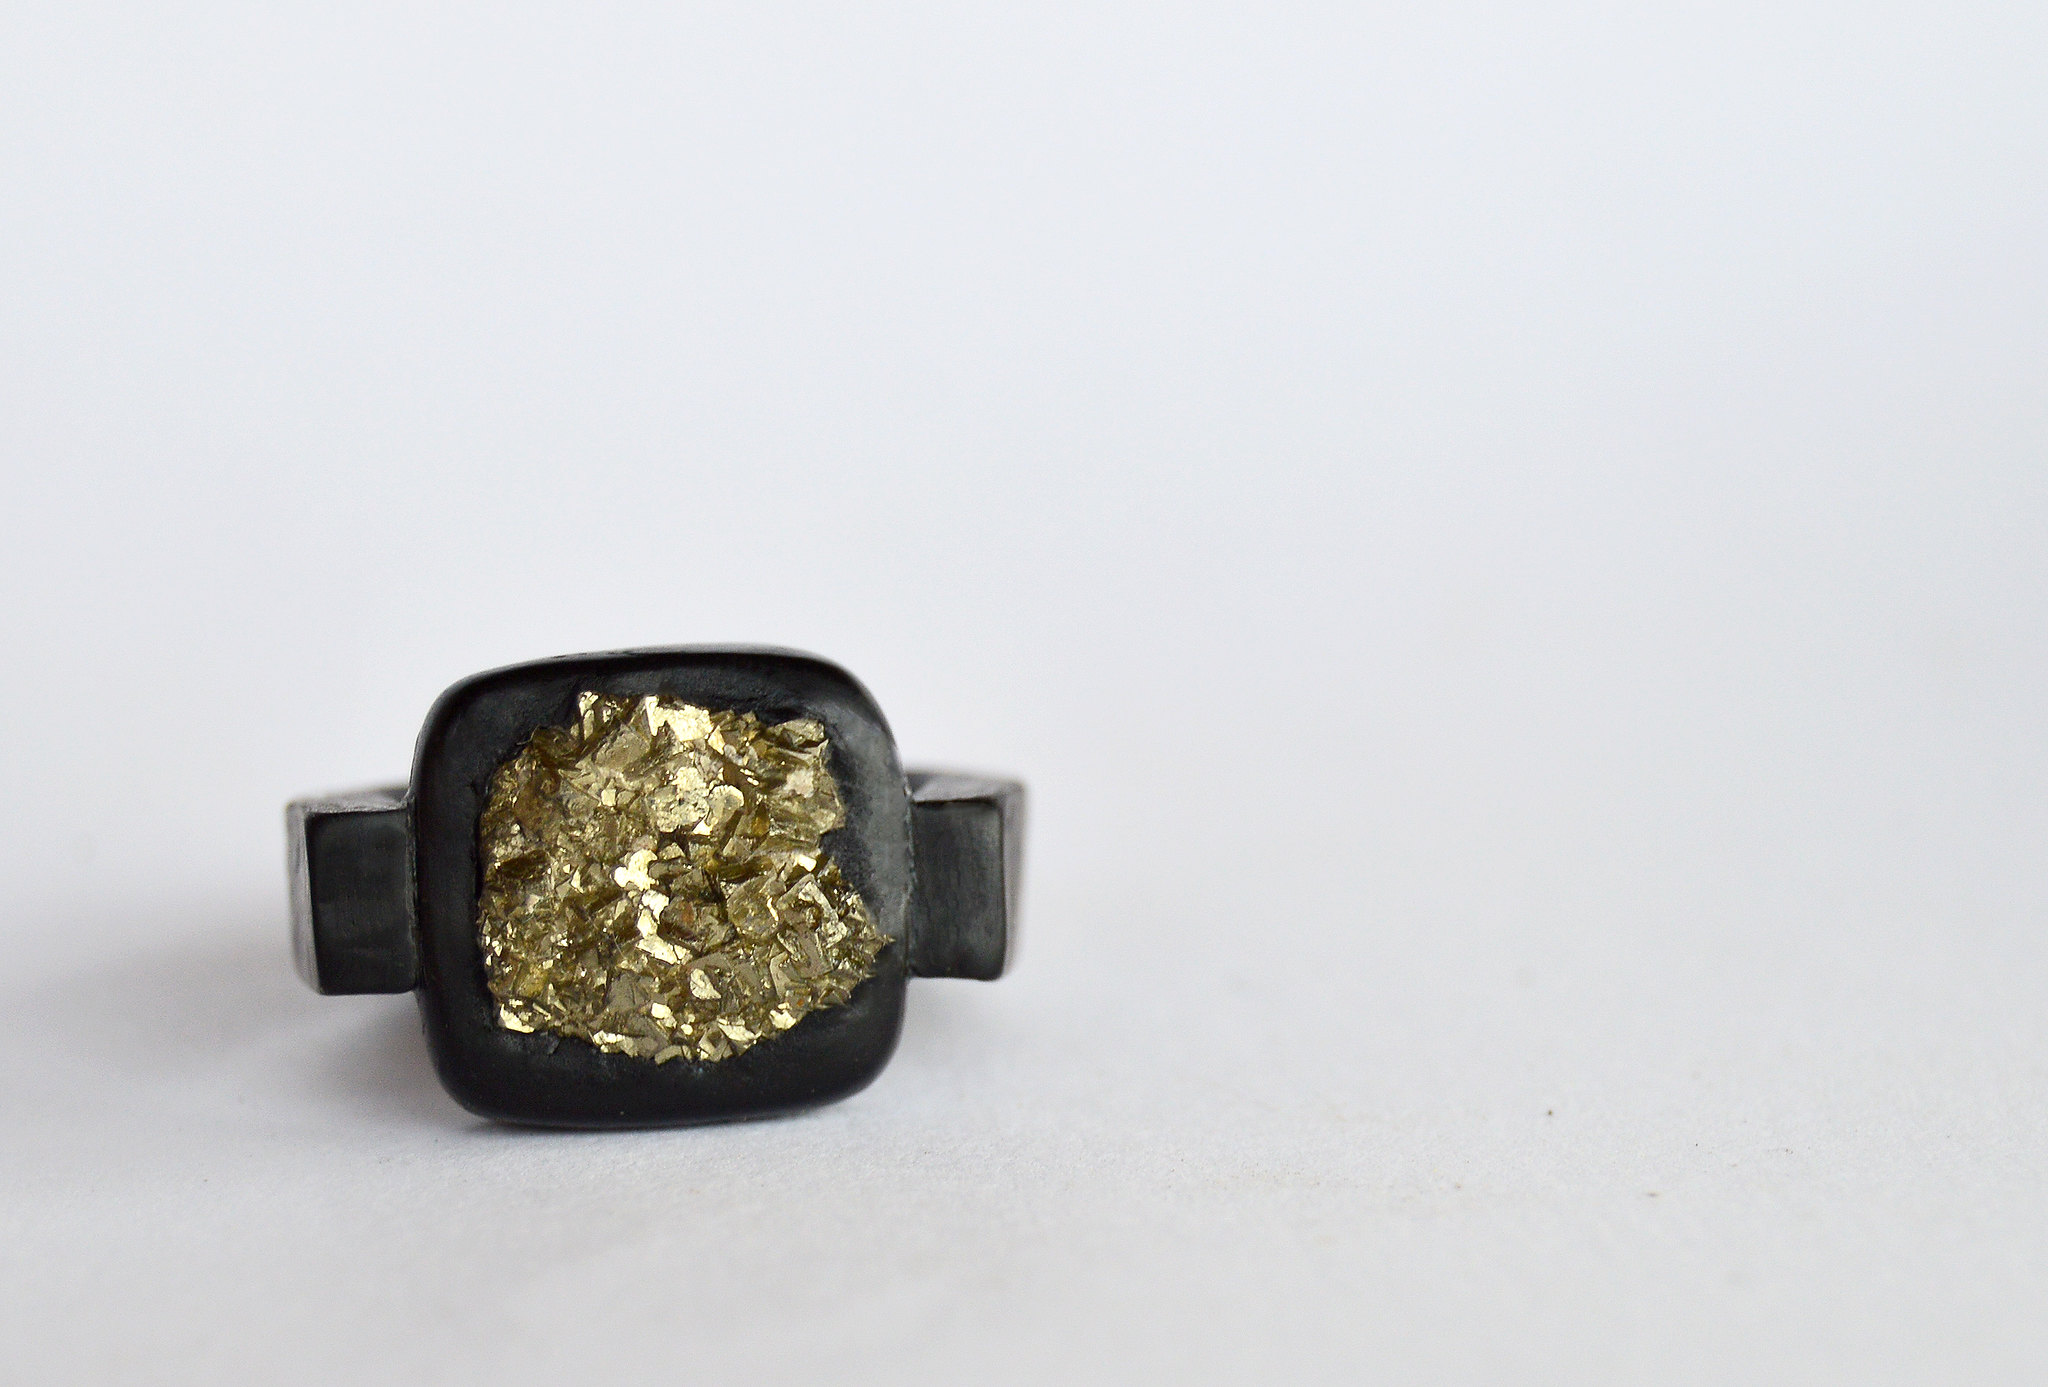 Simple design with pyrite